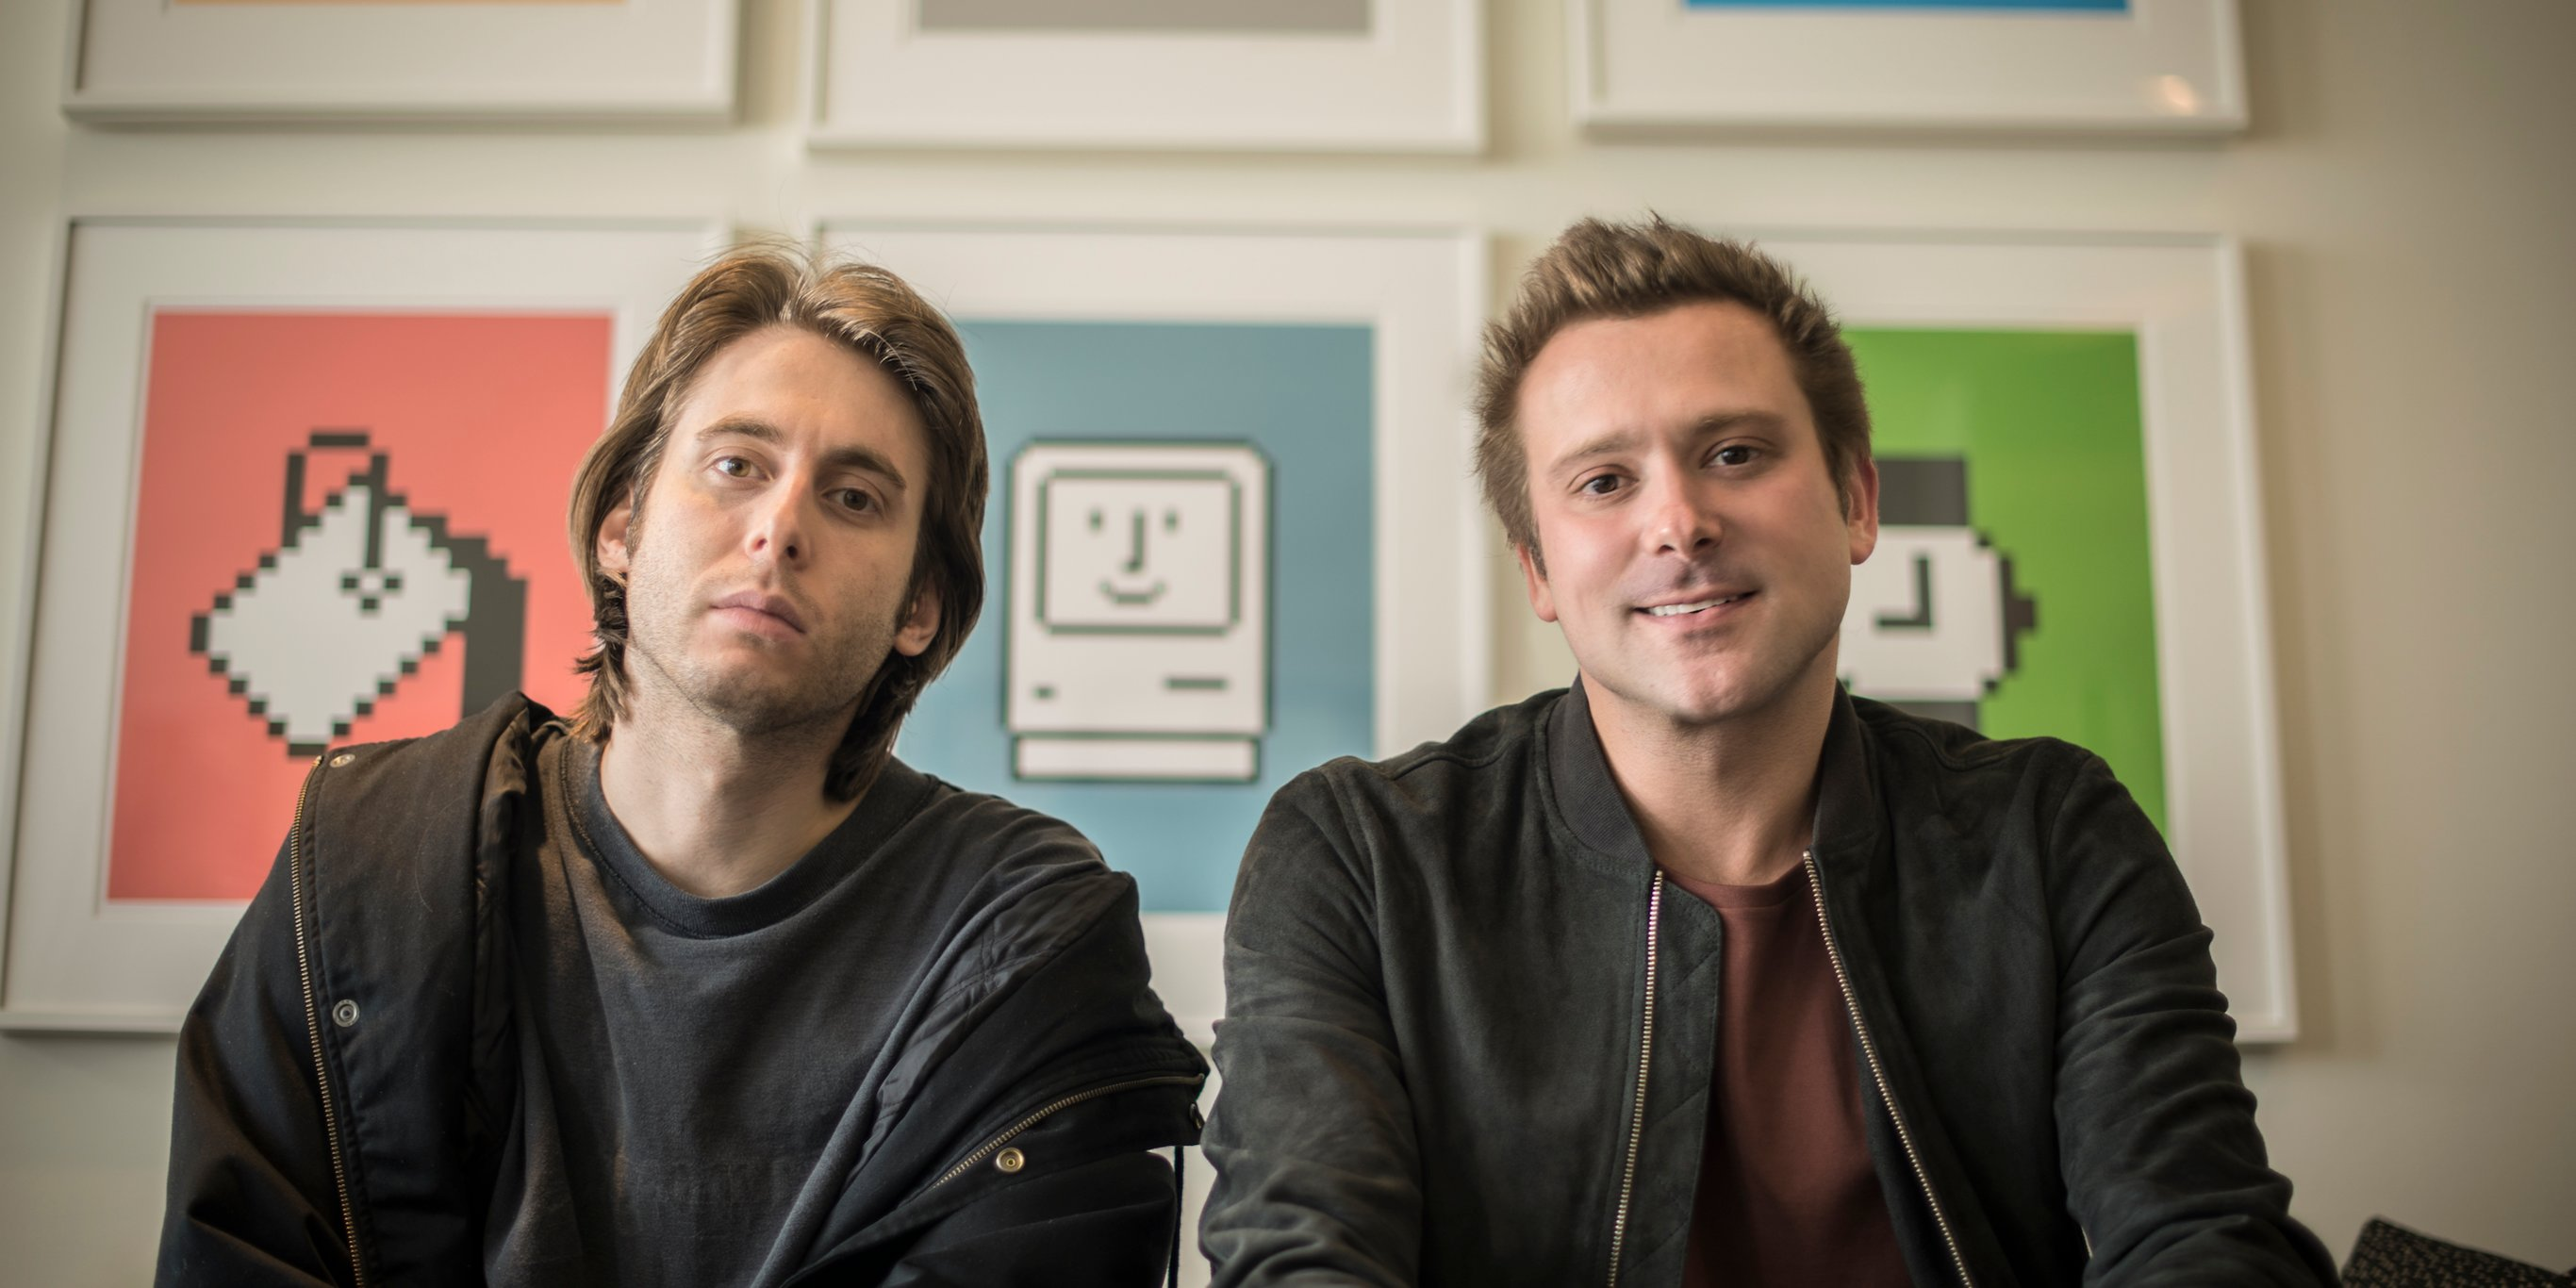 Meet the 30-year-old cofounders of SmileDirectClub, Jordan Katzman and Alex Fenkell, who just became 2 of the youngest billionaires in the US